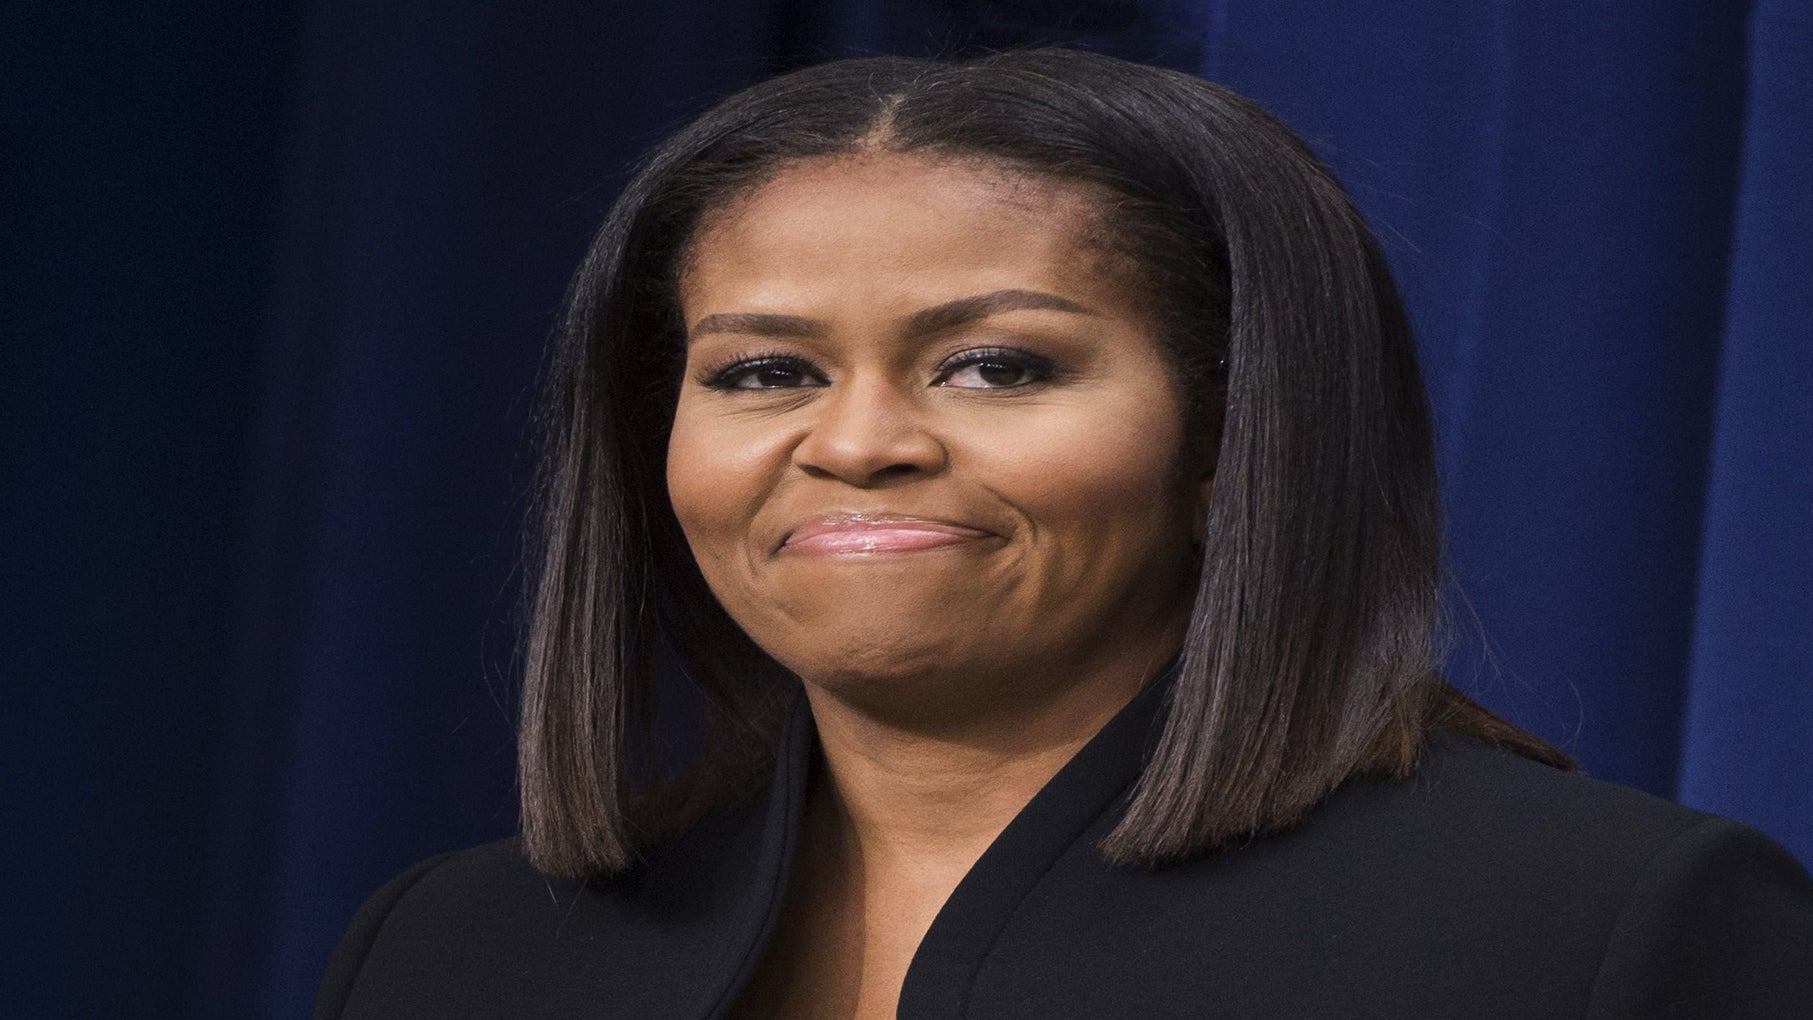 Michelle Obama Is #YachtGoals While Vacationing In Mallorca